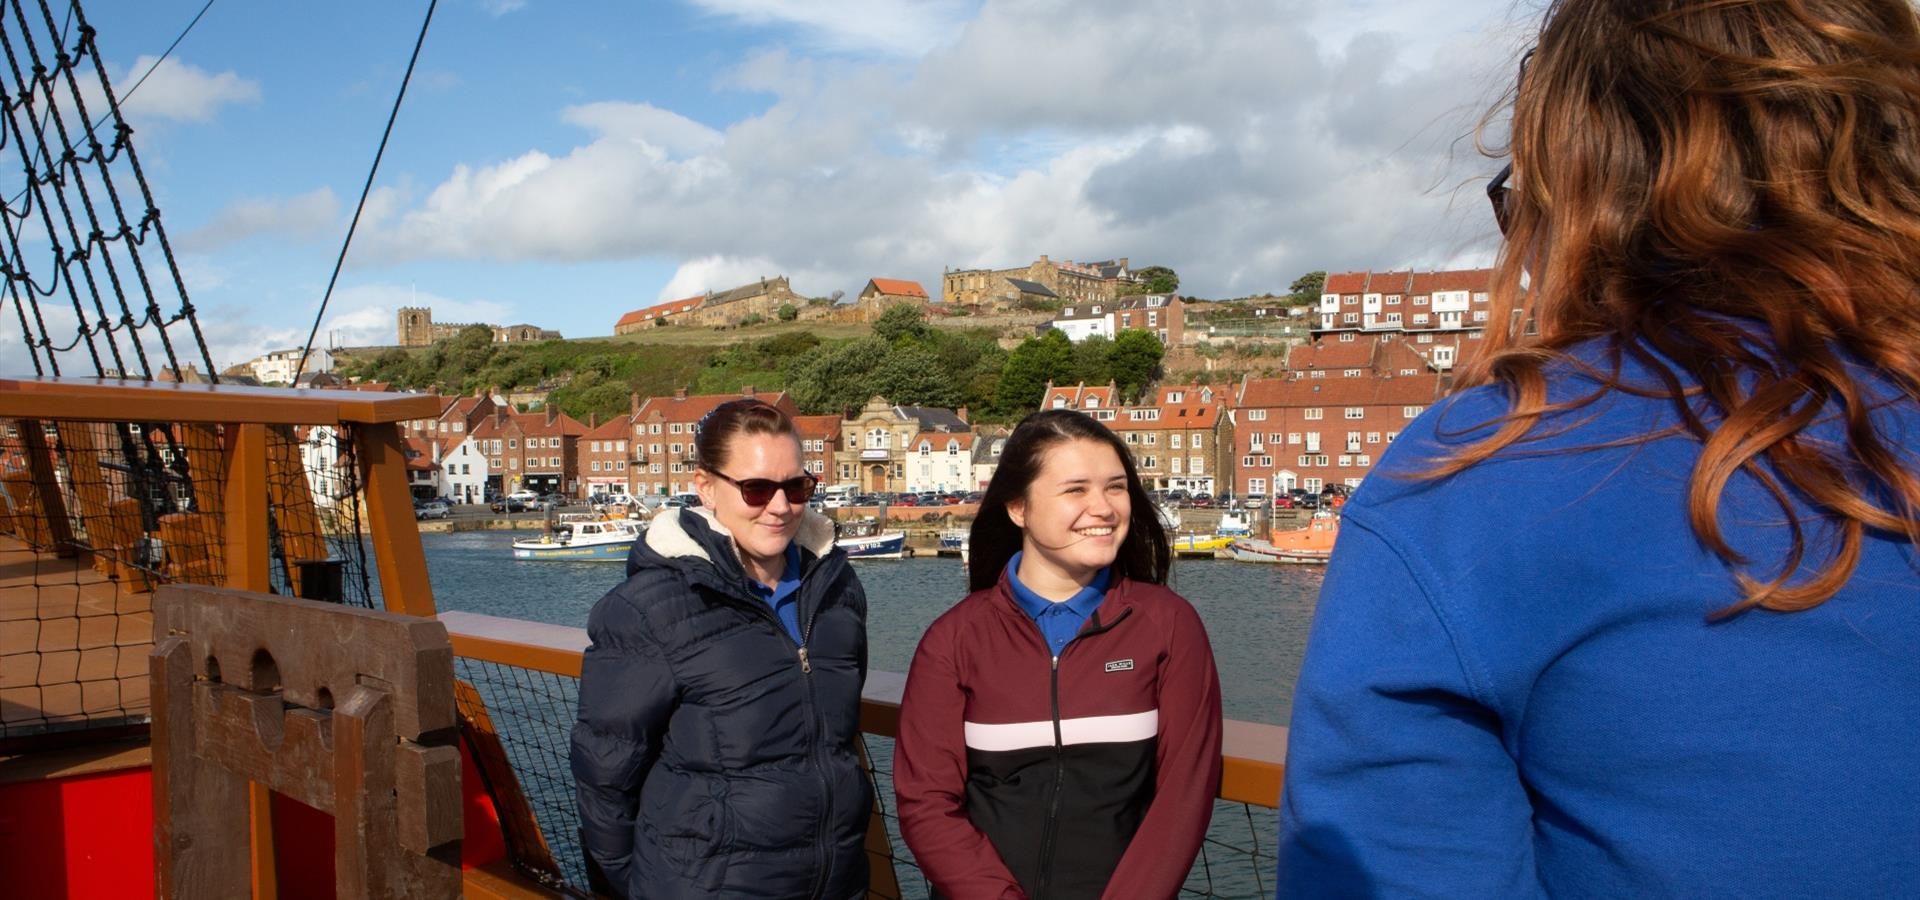 An image of a tour on the Whitby Endeavour by Duncan Lomax